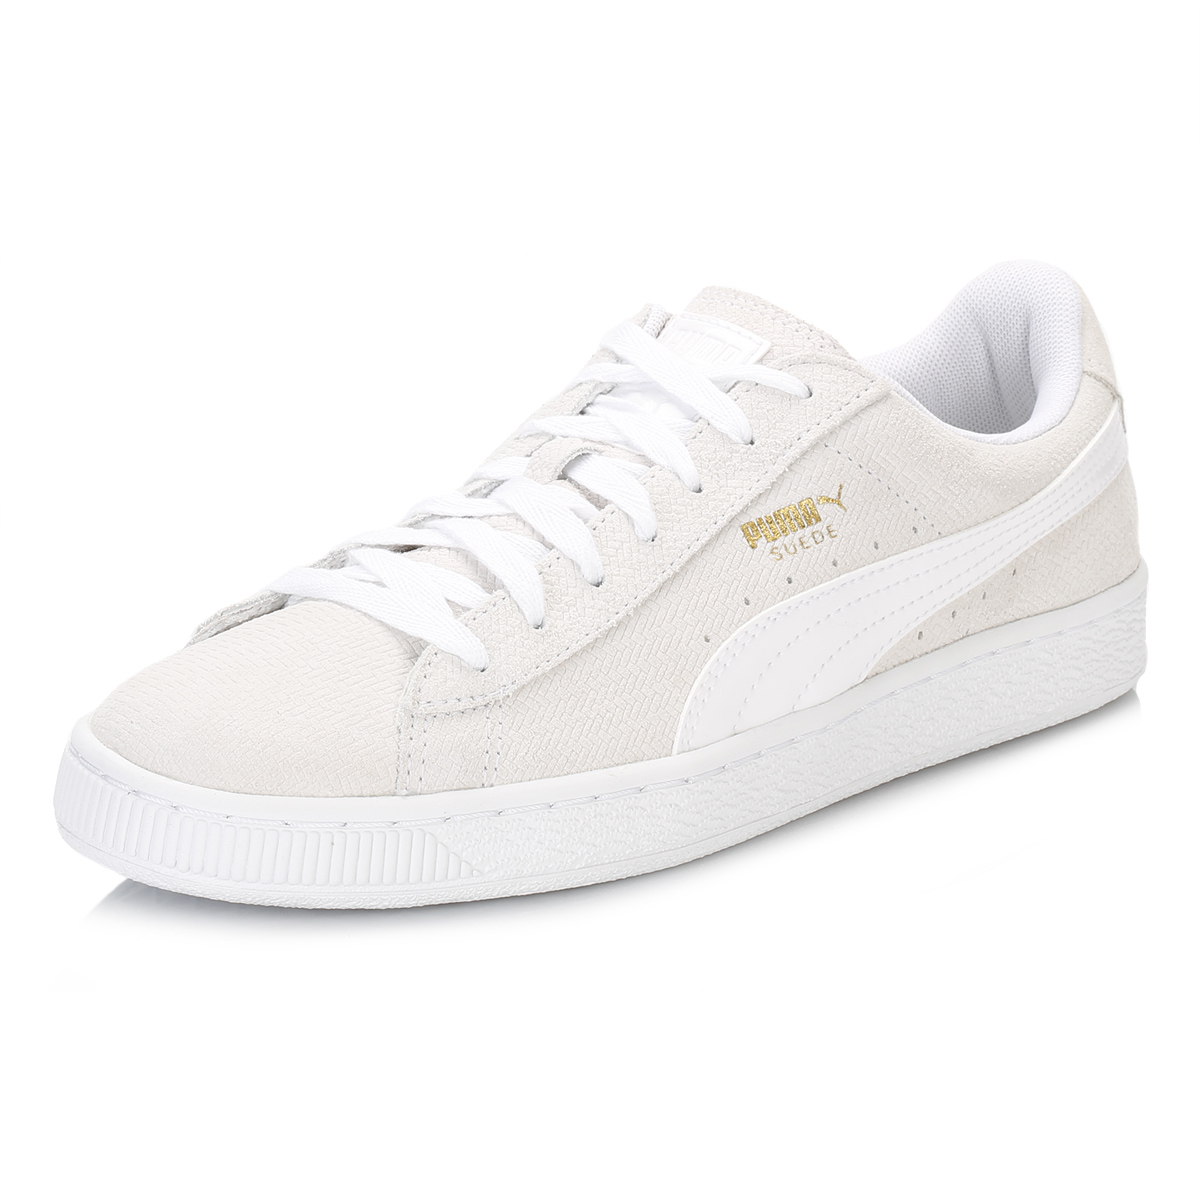 Chaussures Puma Star blanches Casual femme